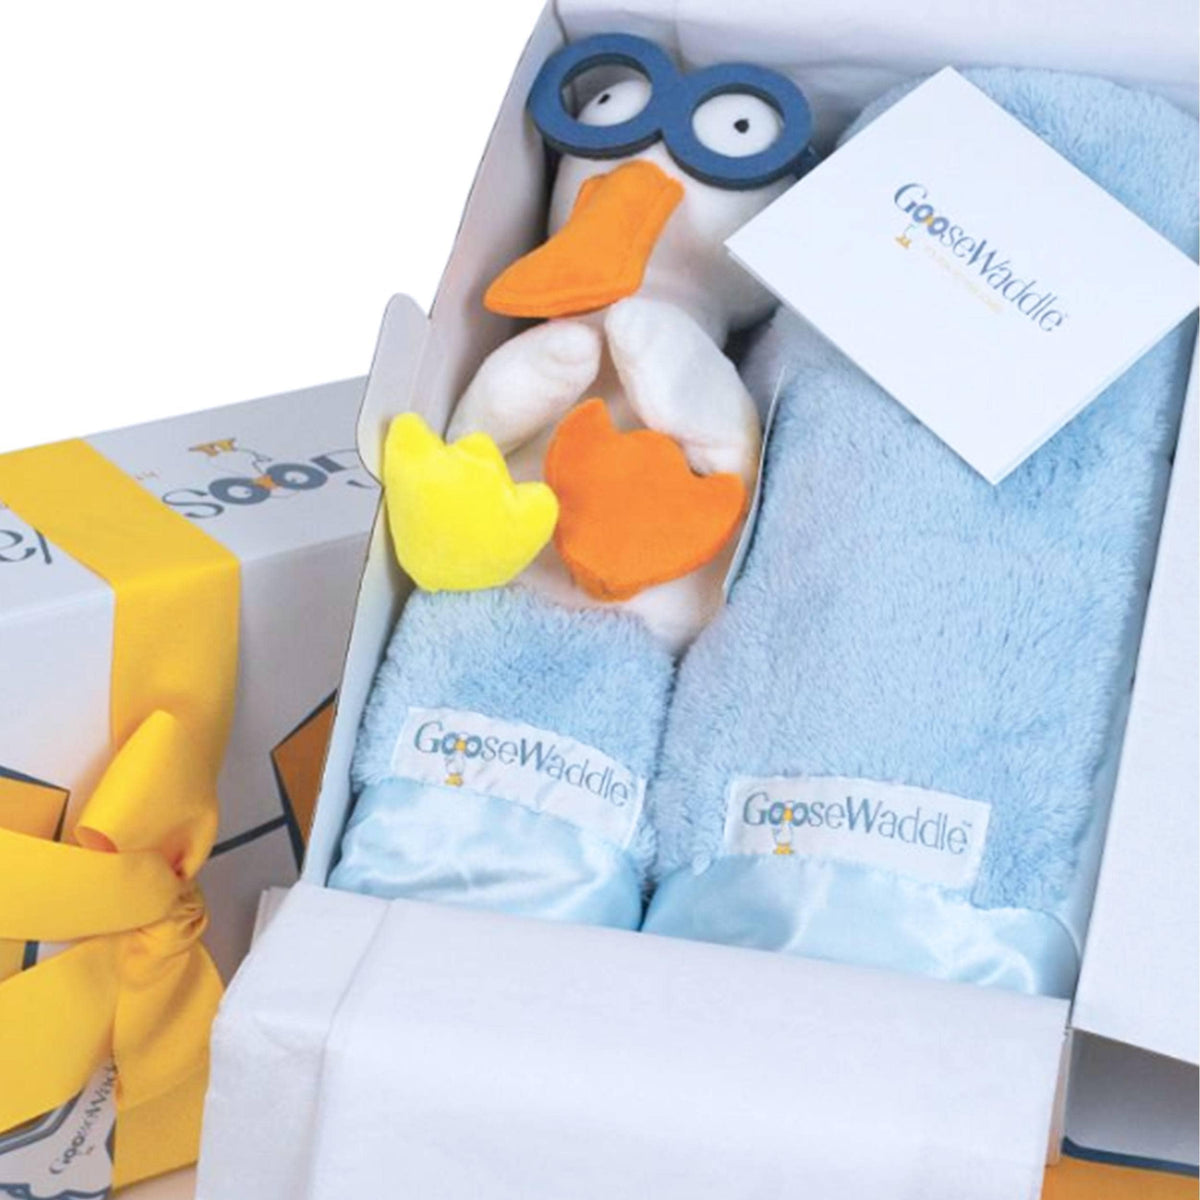 Luxury Gift Set - Goosewaddle